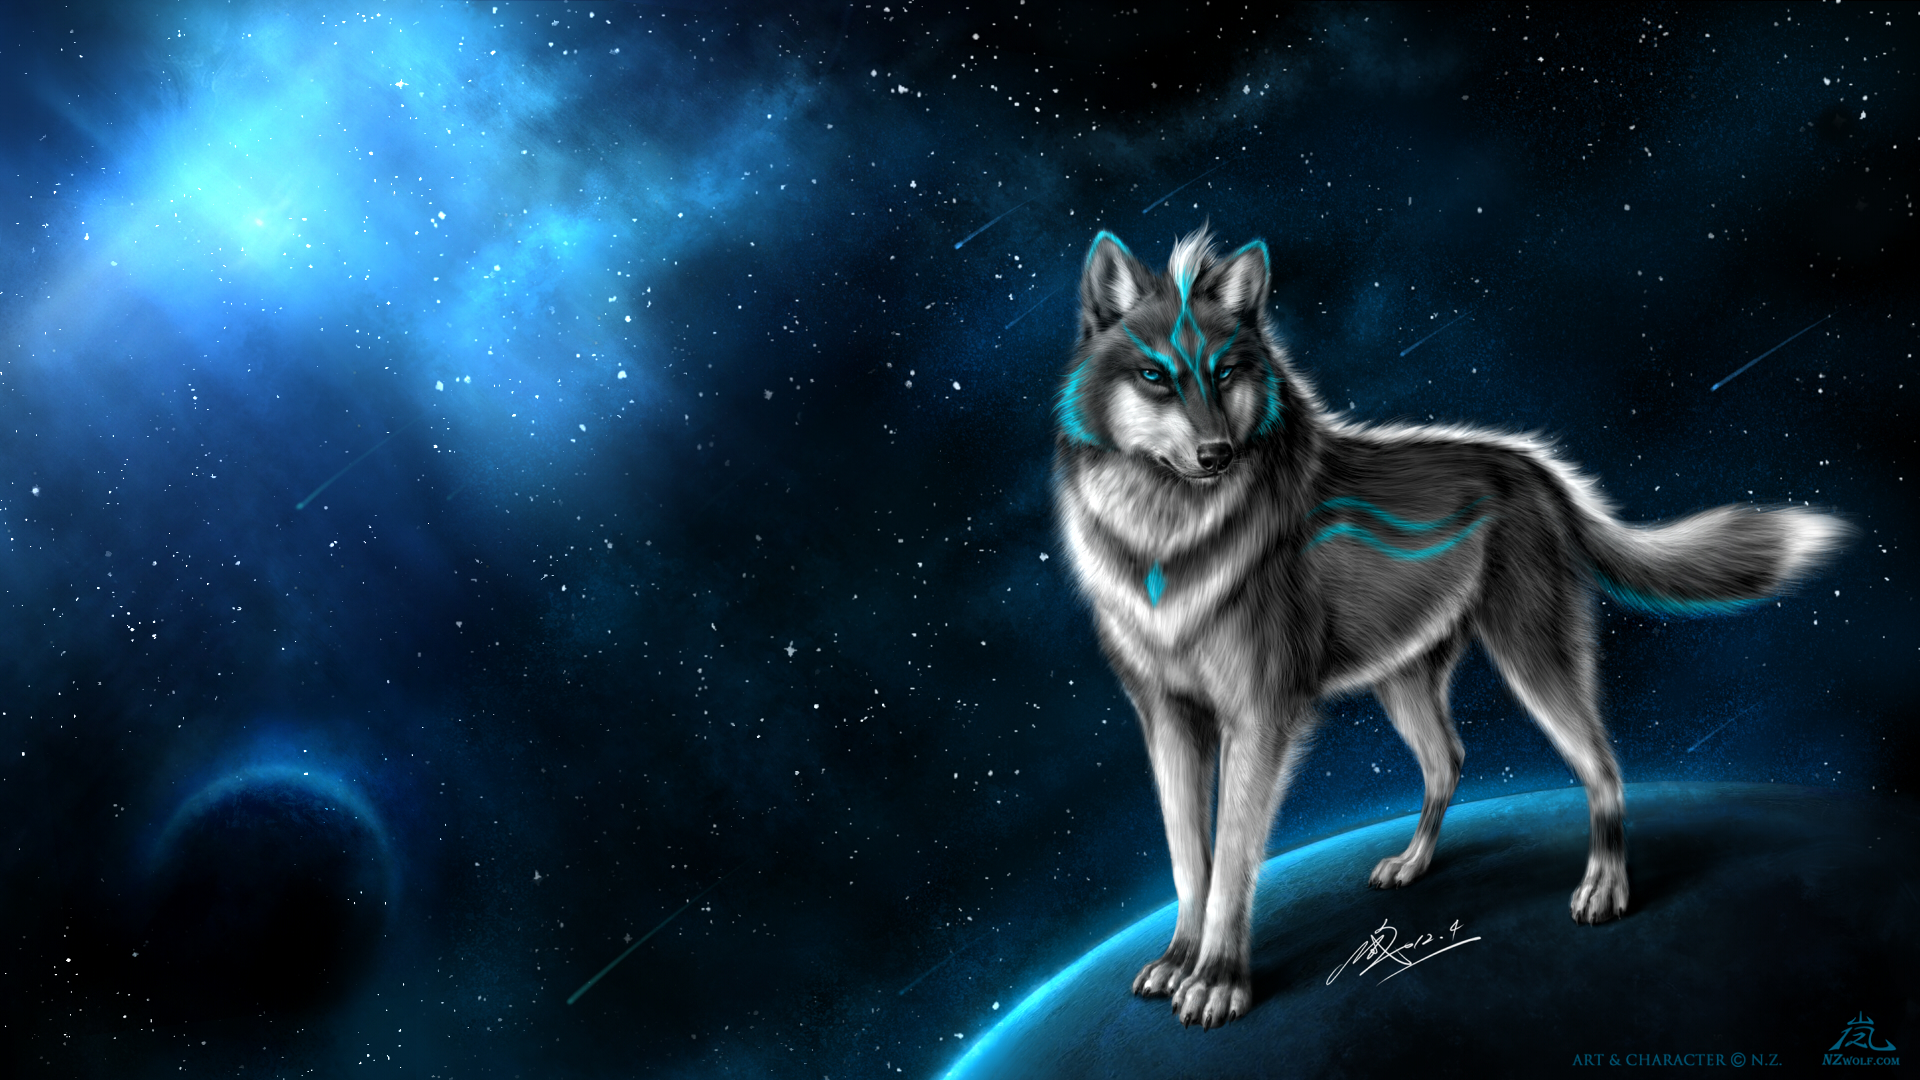 Hd Wallpapers Hd Backgrounds: HD Wolf Wallpapers 1080p